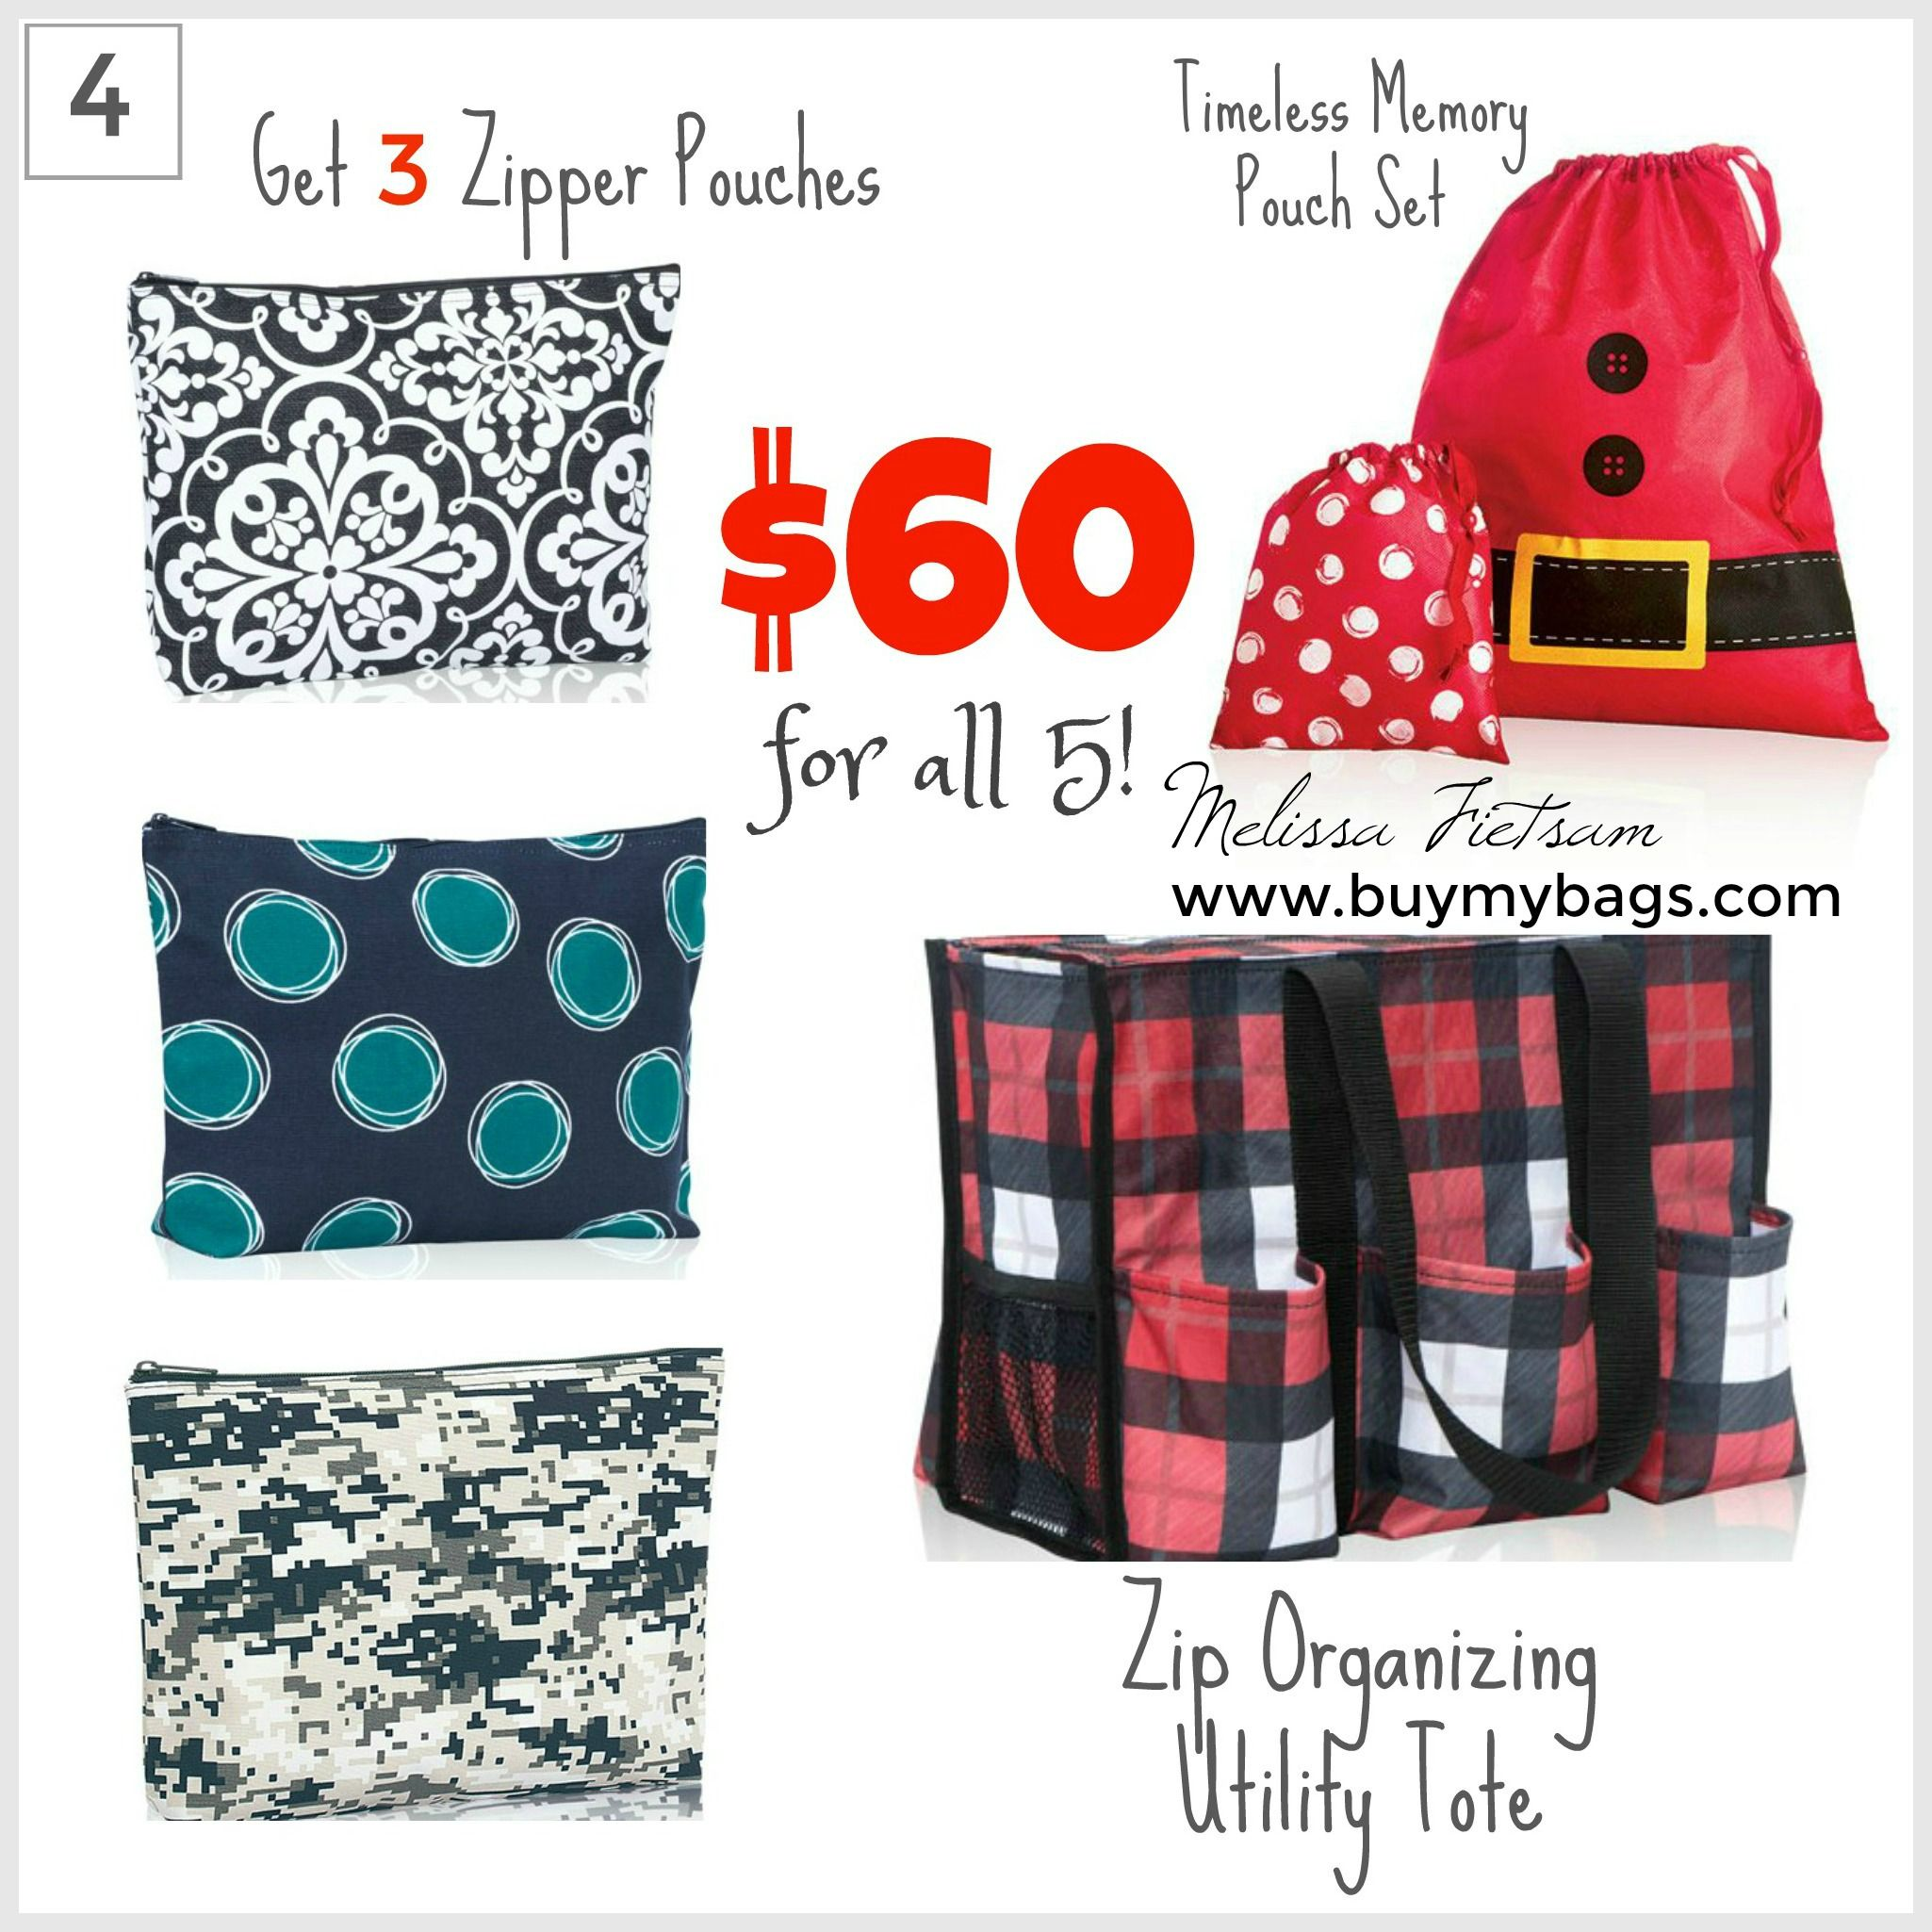 November Thirty One Customer Specials Make For Some Really Great Bundle